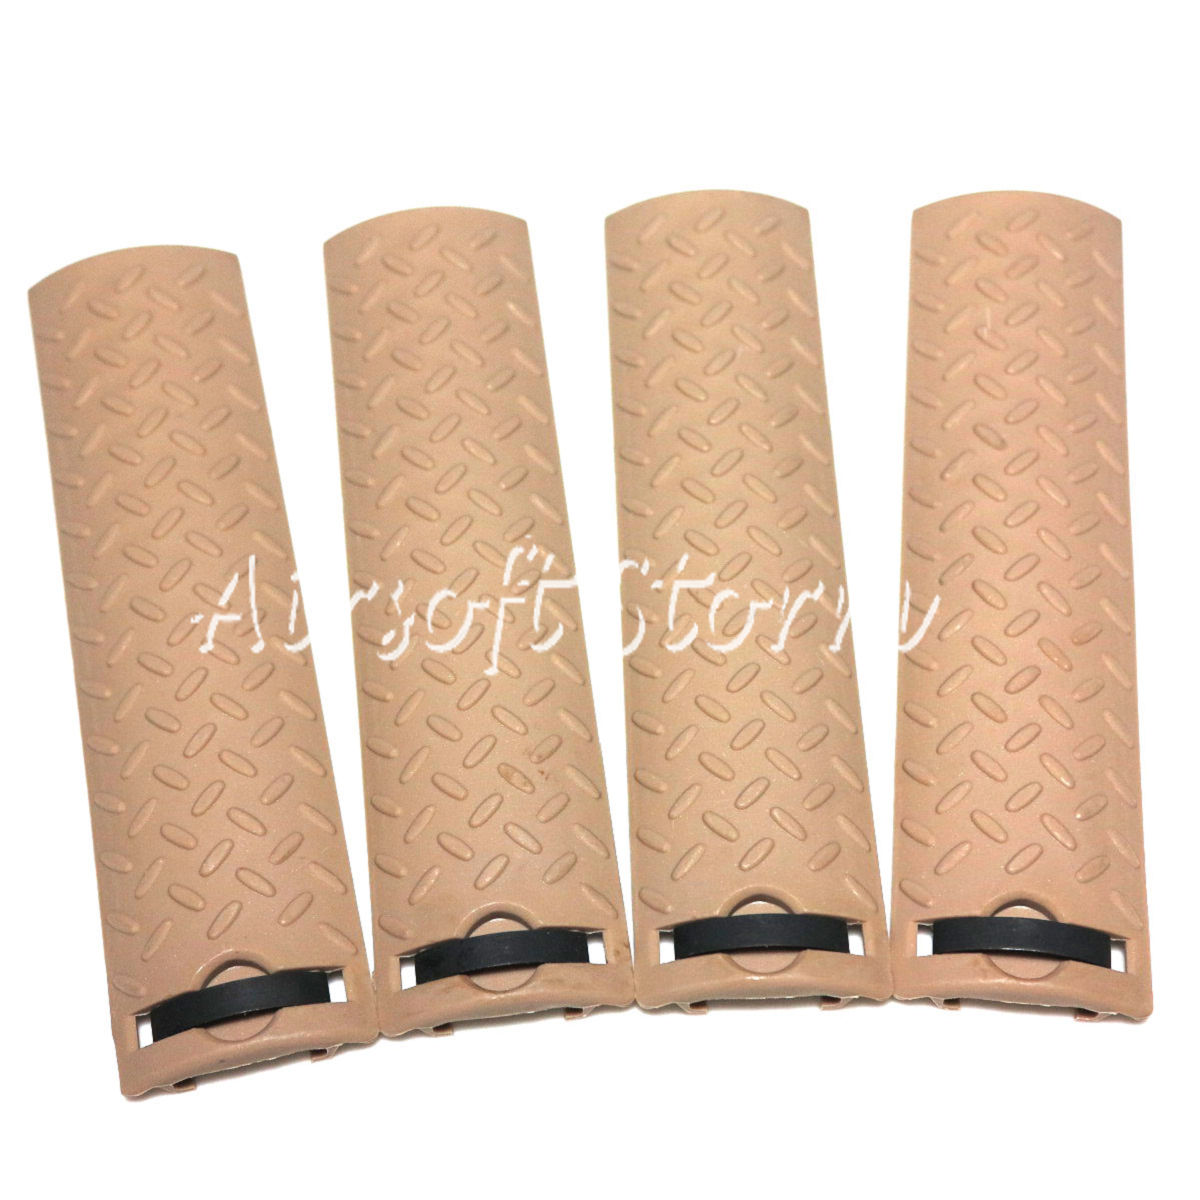 Shooting Tactical Gear 4pcs Set Energy Skidproof Texture Type Rail Cover Panel Desert Tan